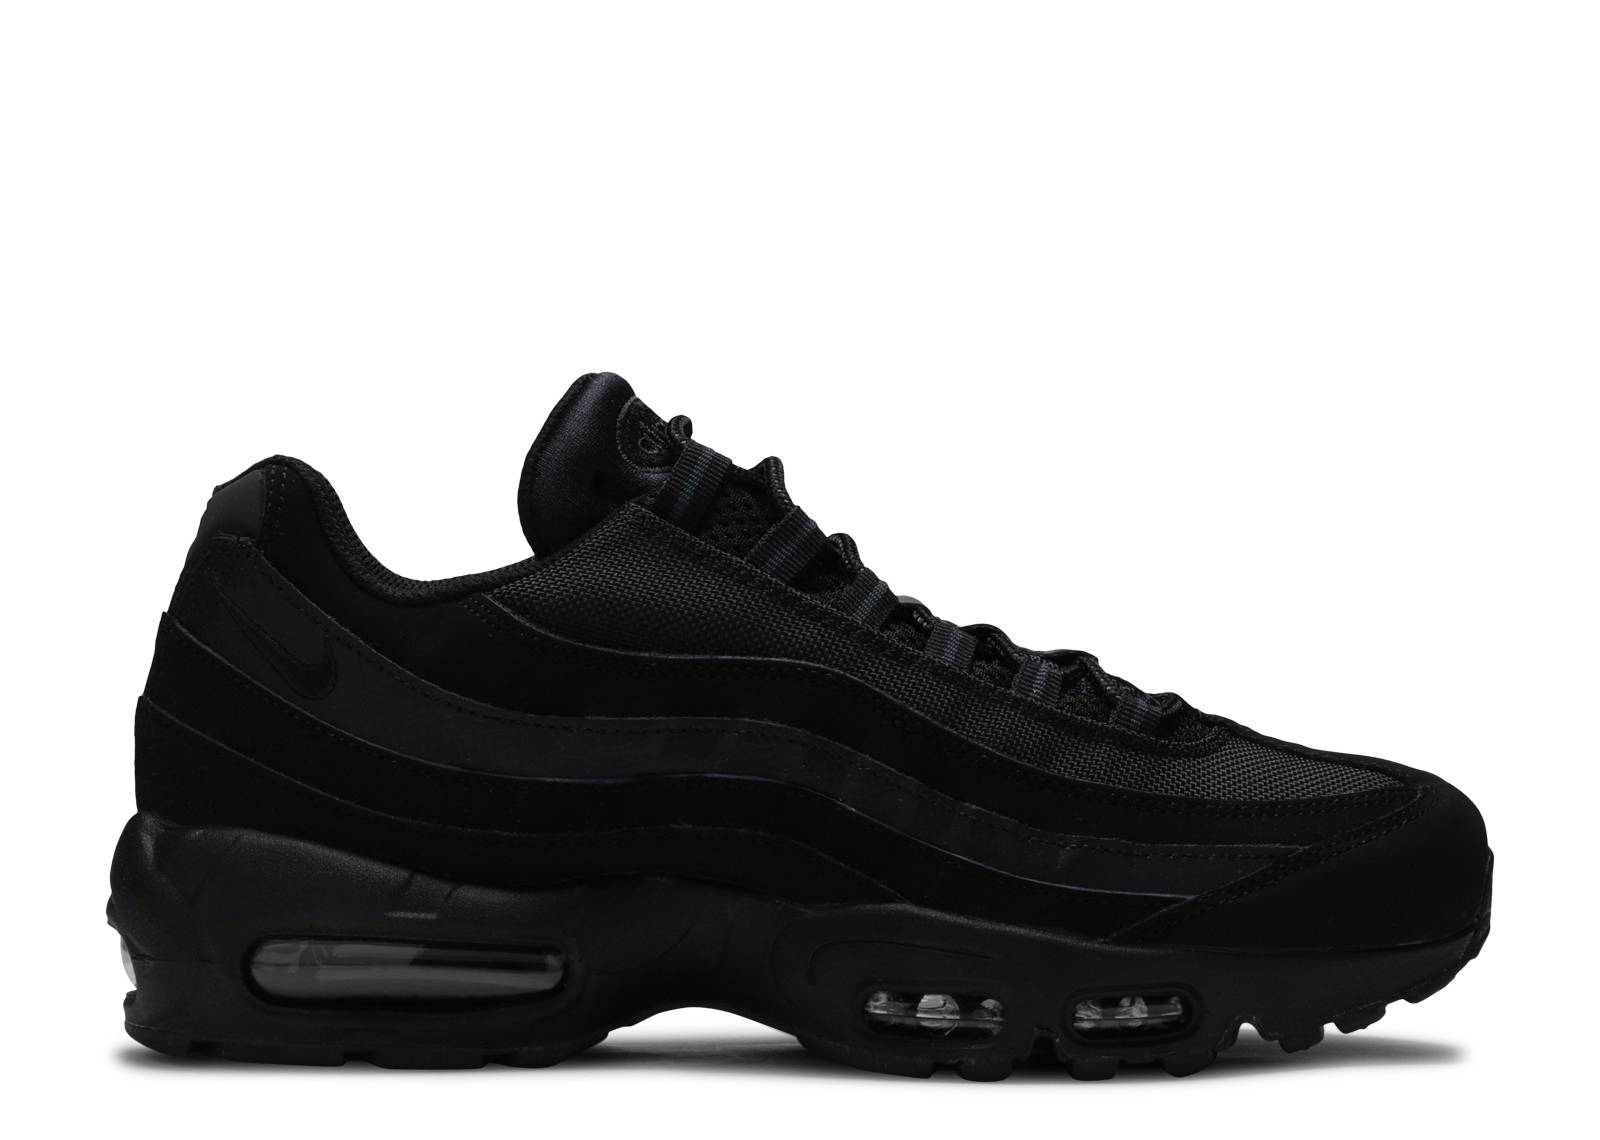 promo code 1d9b4 ded9f Nike Air Max Shoes  Flight Club